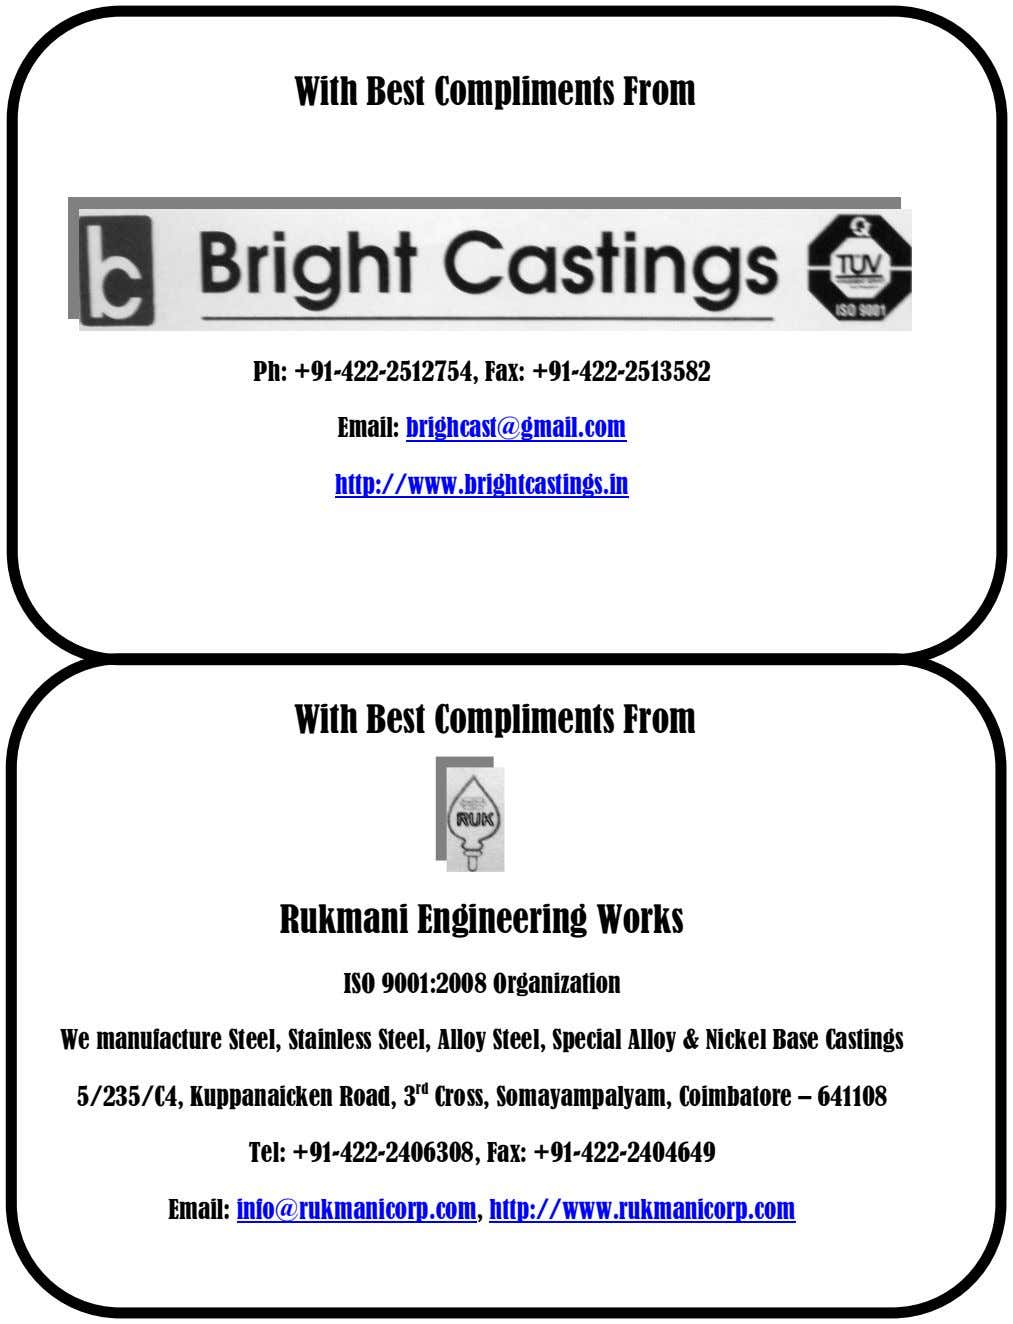 With Best Compliments From Ph: +91-422-2512754, Fax: +91-422-2513582 Email: brighcast@gmail.com